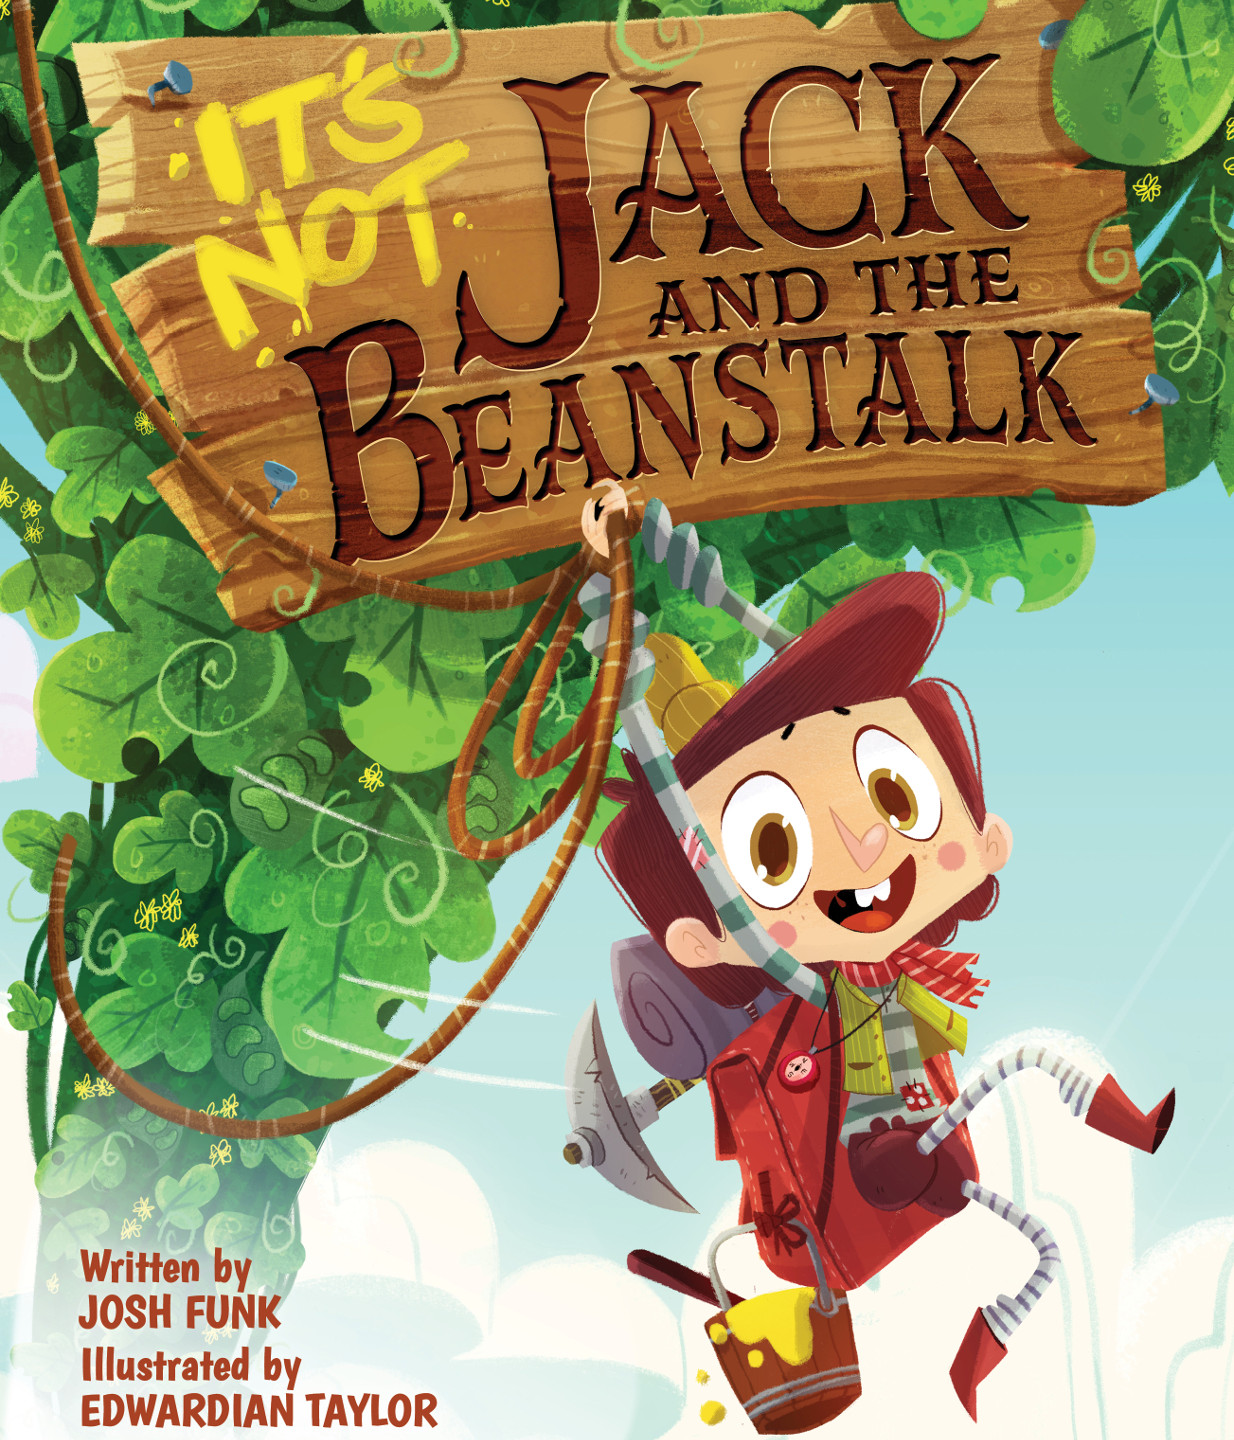 _It's Not Jack and the Beanstalk